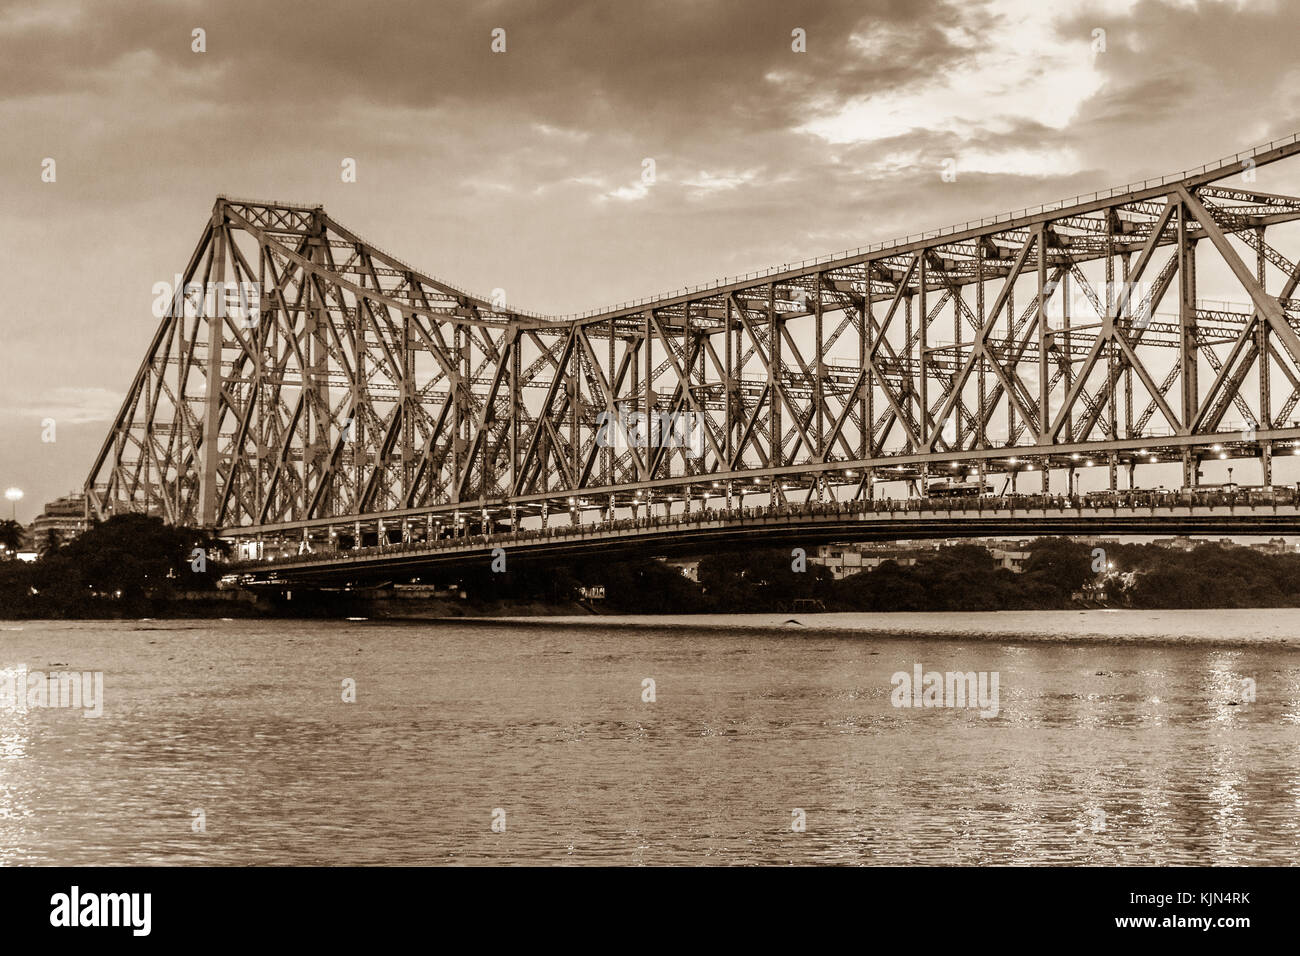 Howrah bridge in sepia color - The historic cantilever bridge on the river Hooghly with moody sky. - Stock Image